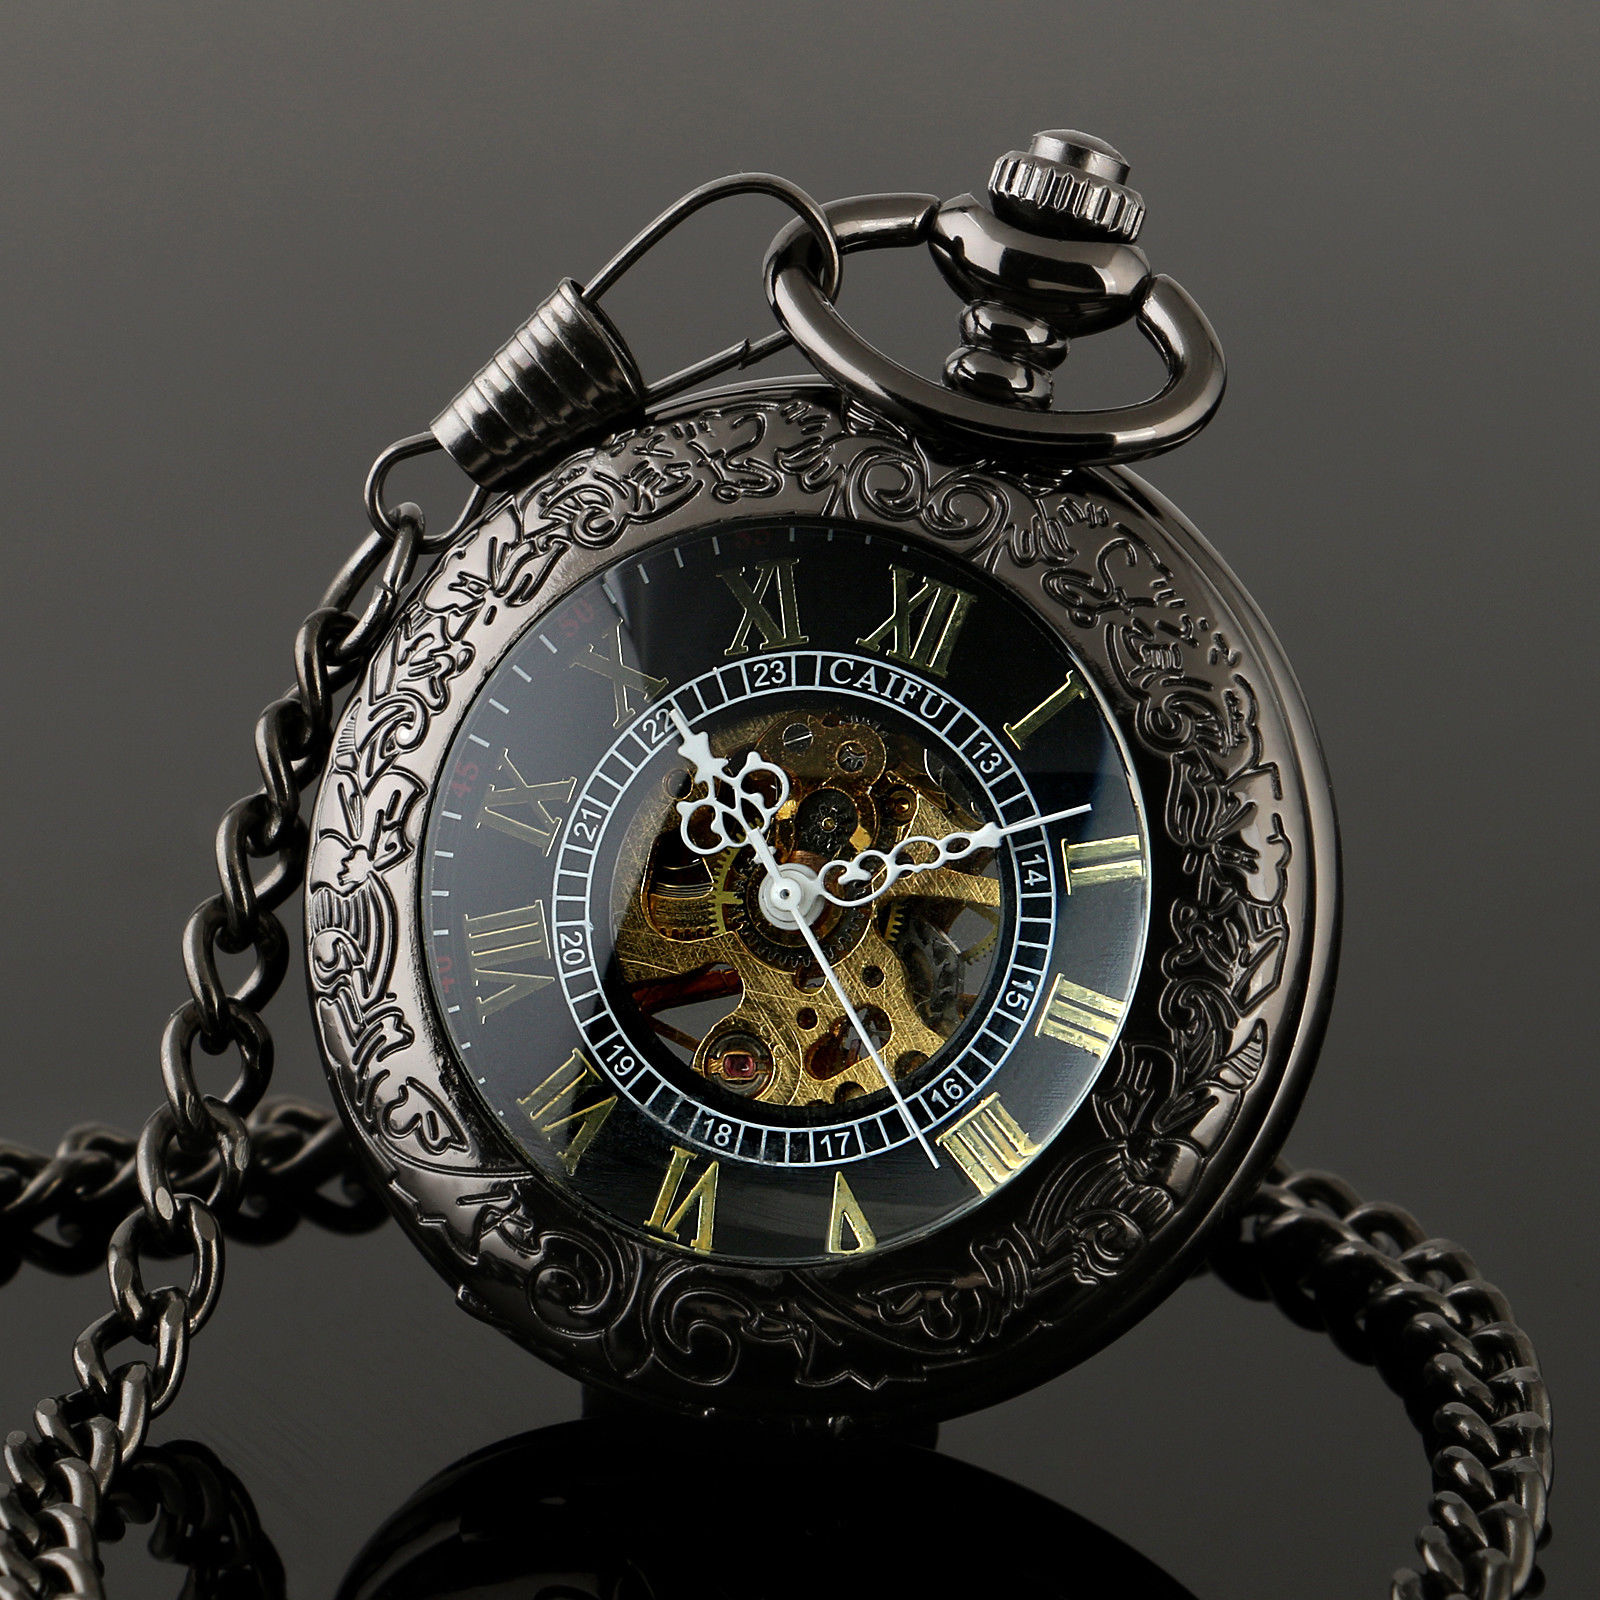 CAIFU Brand New Arrival See Through Black Case Roman Number Black Dial Mens Hand Wind Mechanical Pocket Watch W/Chain Nice Gift